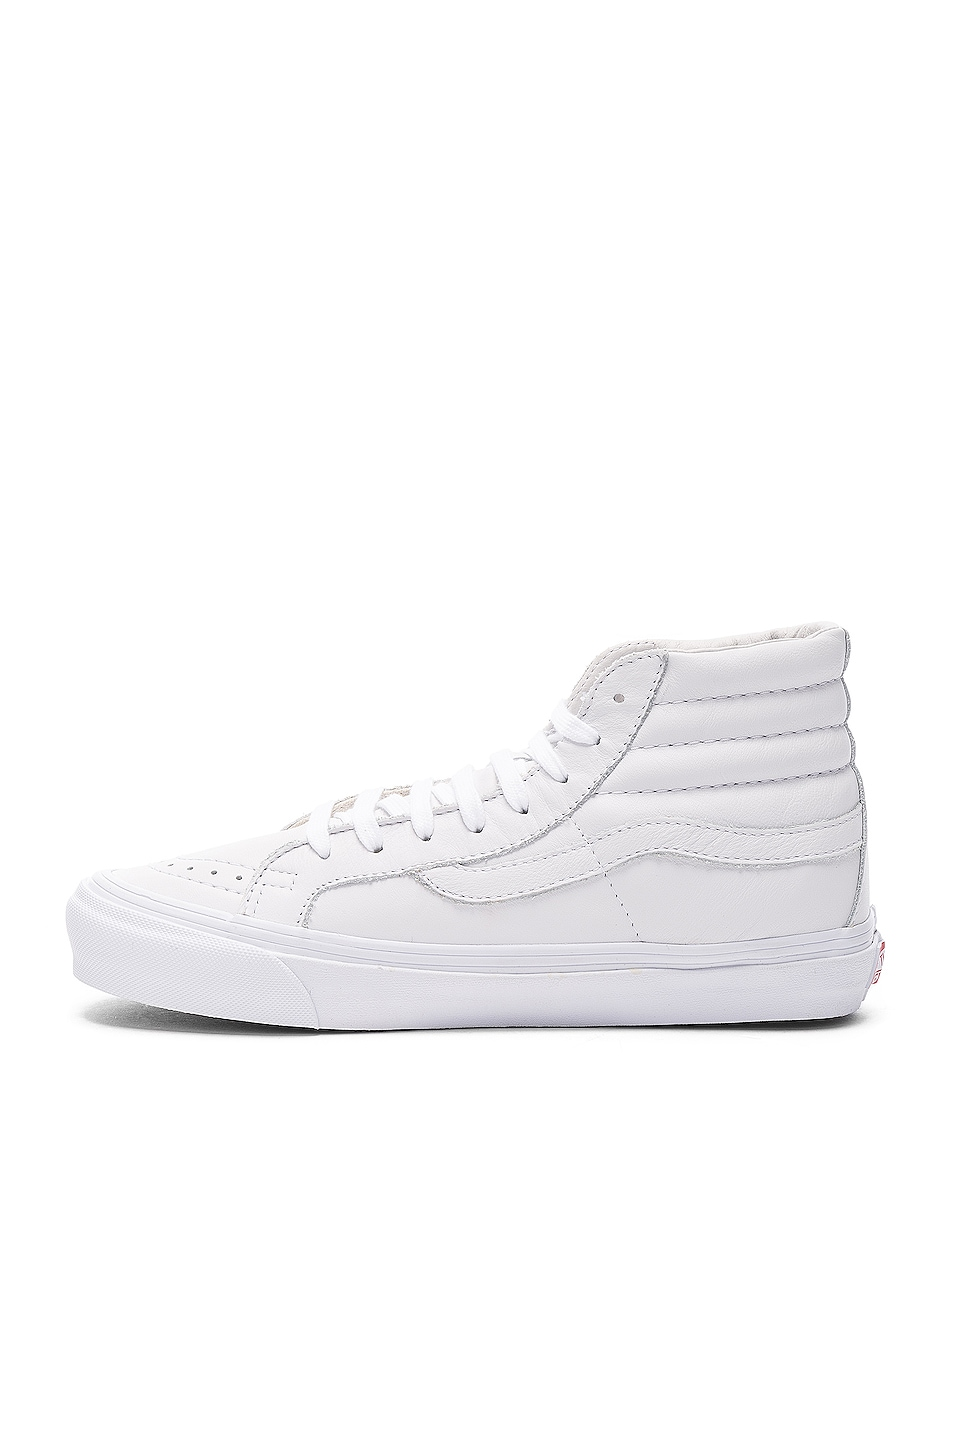 Image 5 of Vans Vault Leather OG SK8-HI LX in White